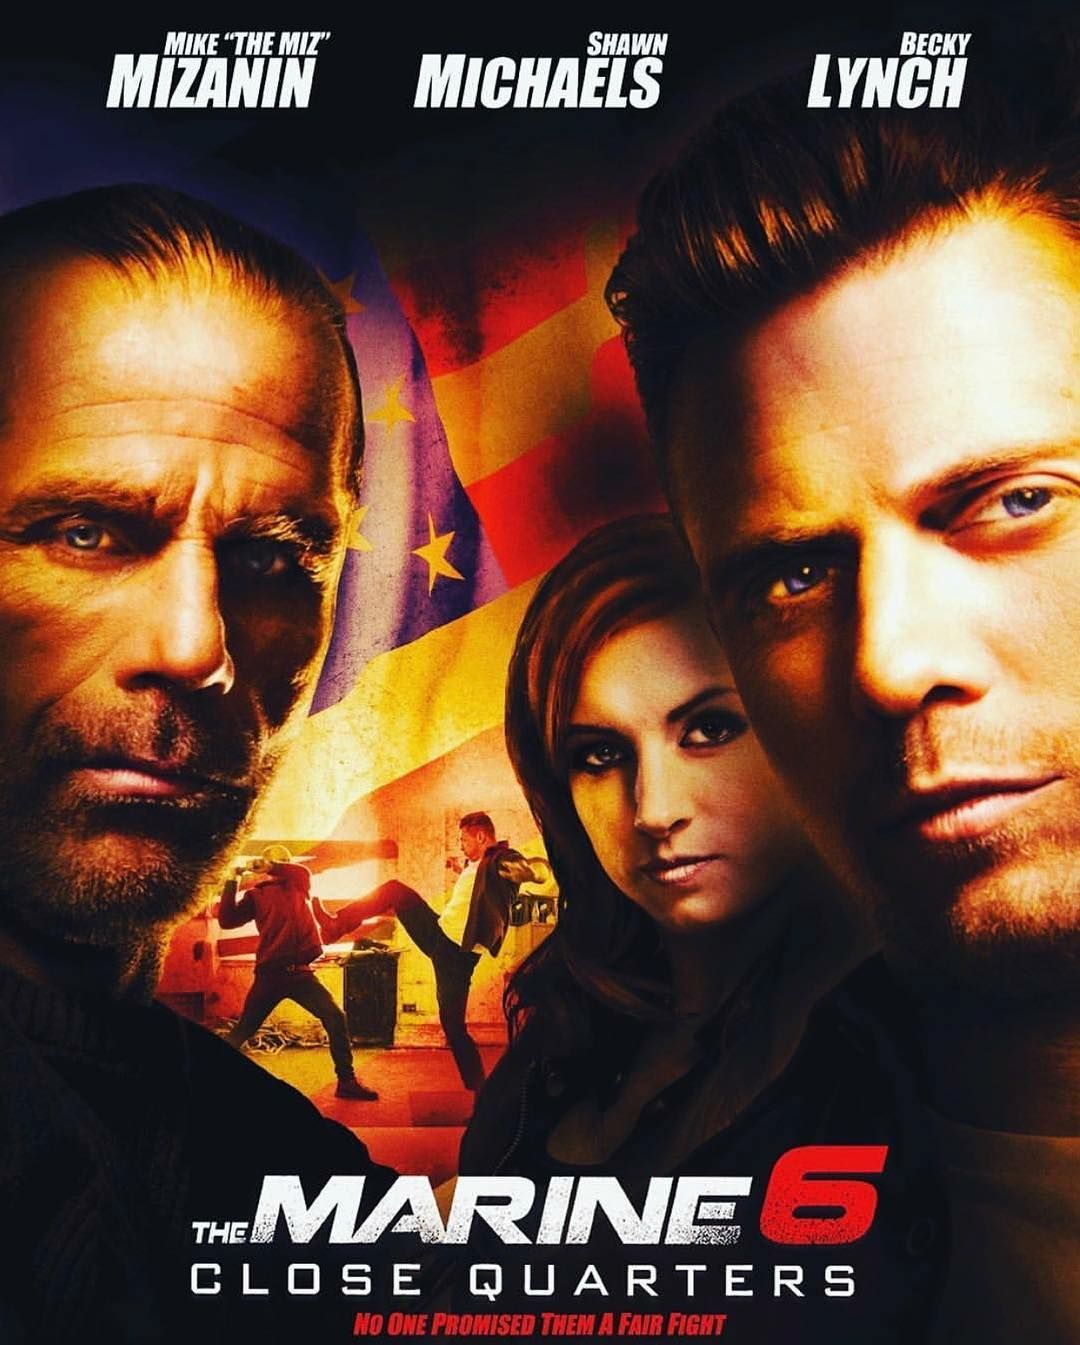 the marine 6 close quarters 2018 imdb